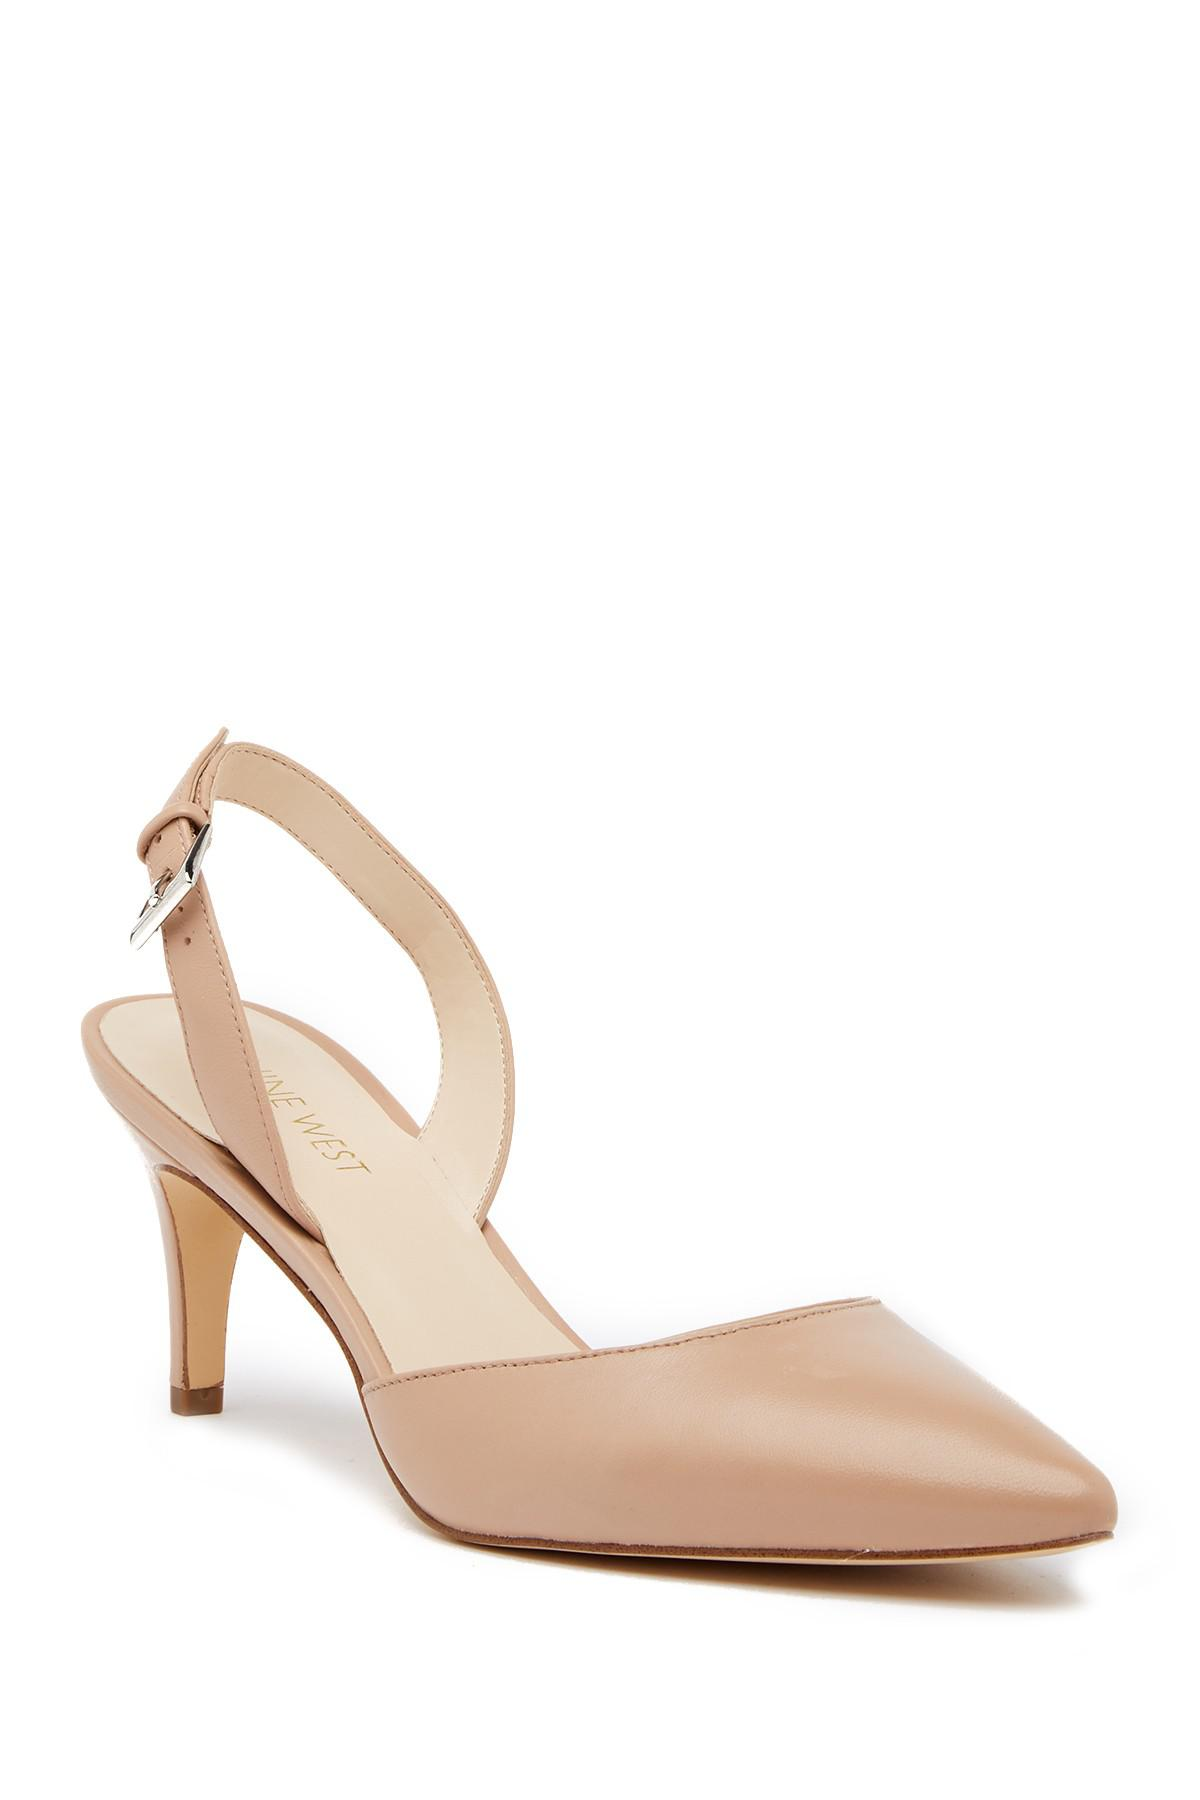 32d35118f4 Nine West - Multicolor Epiphany Slingback Leather Pump - Wide Width  Available - Lyst. View fullscreen